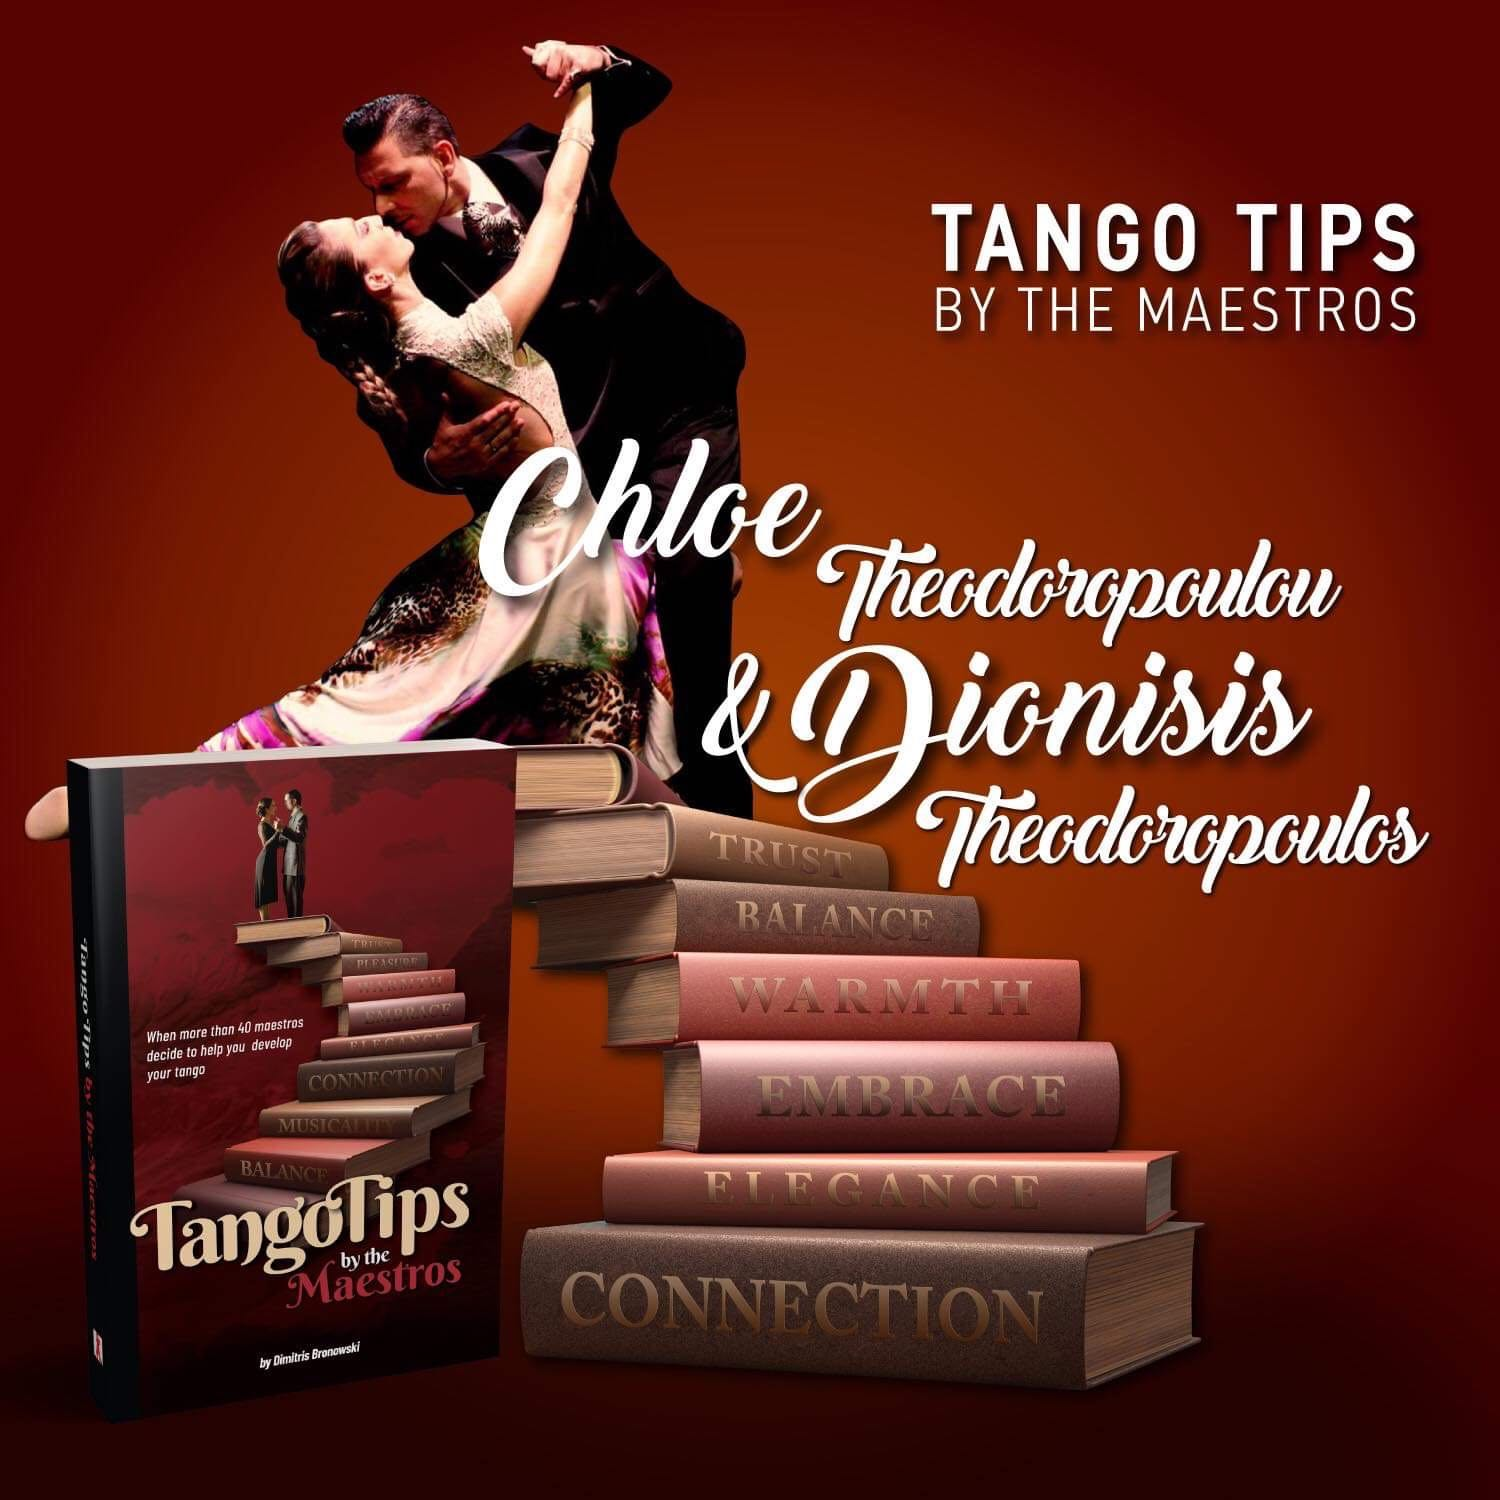 """Tango Tips by the Maestros"""